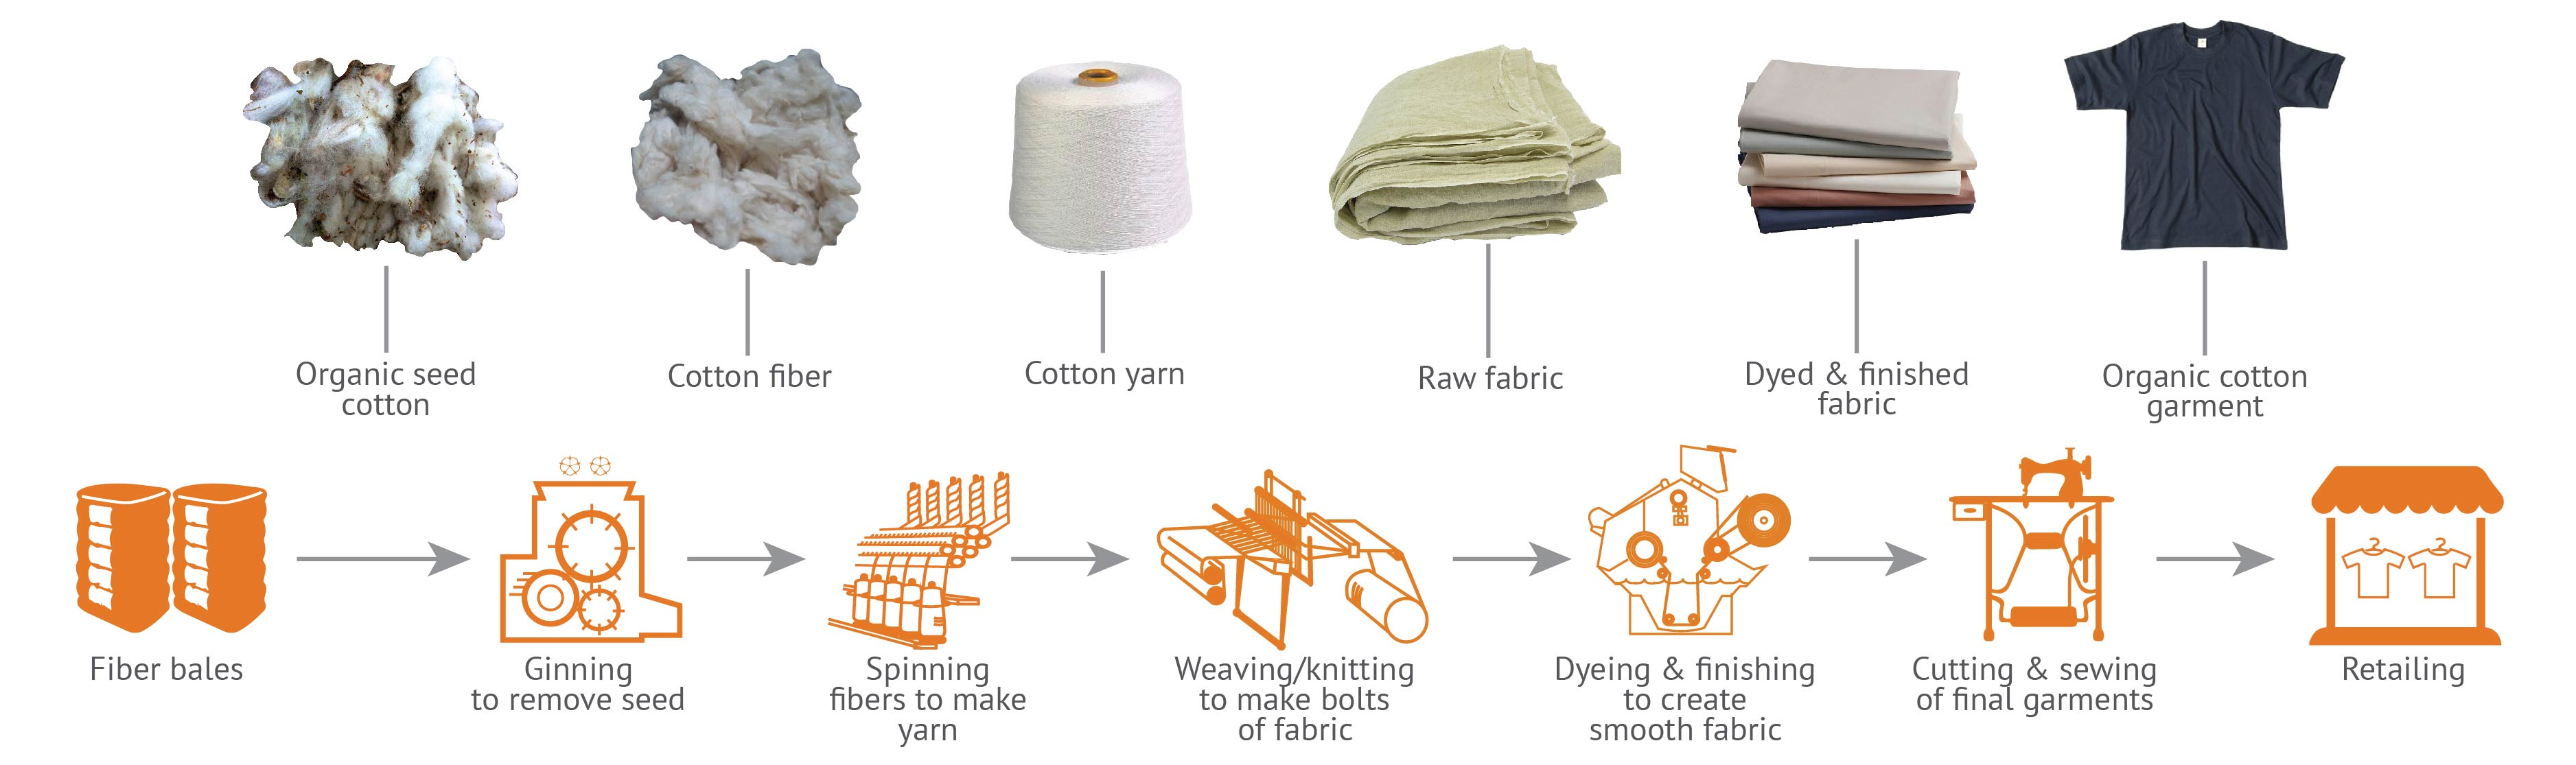 What does the value chain look like for organic cotton ...